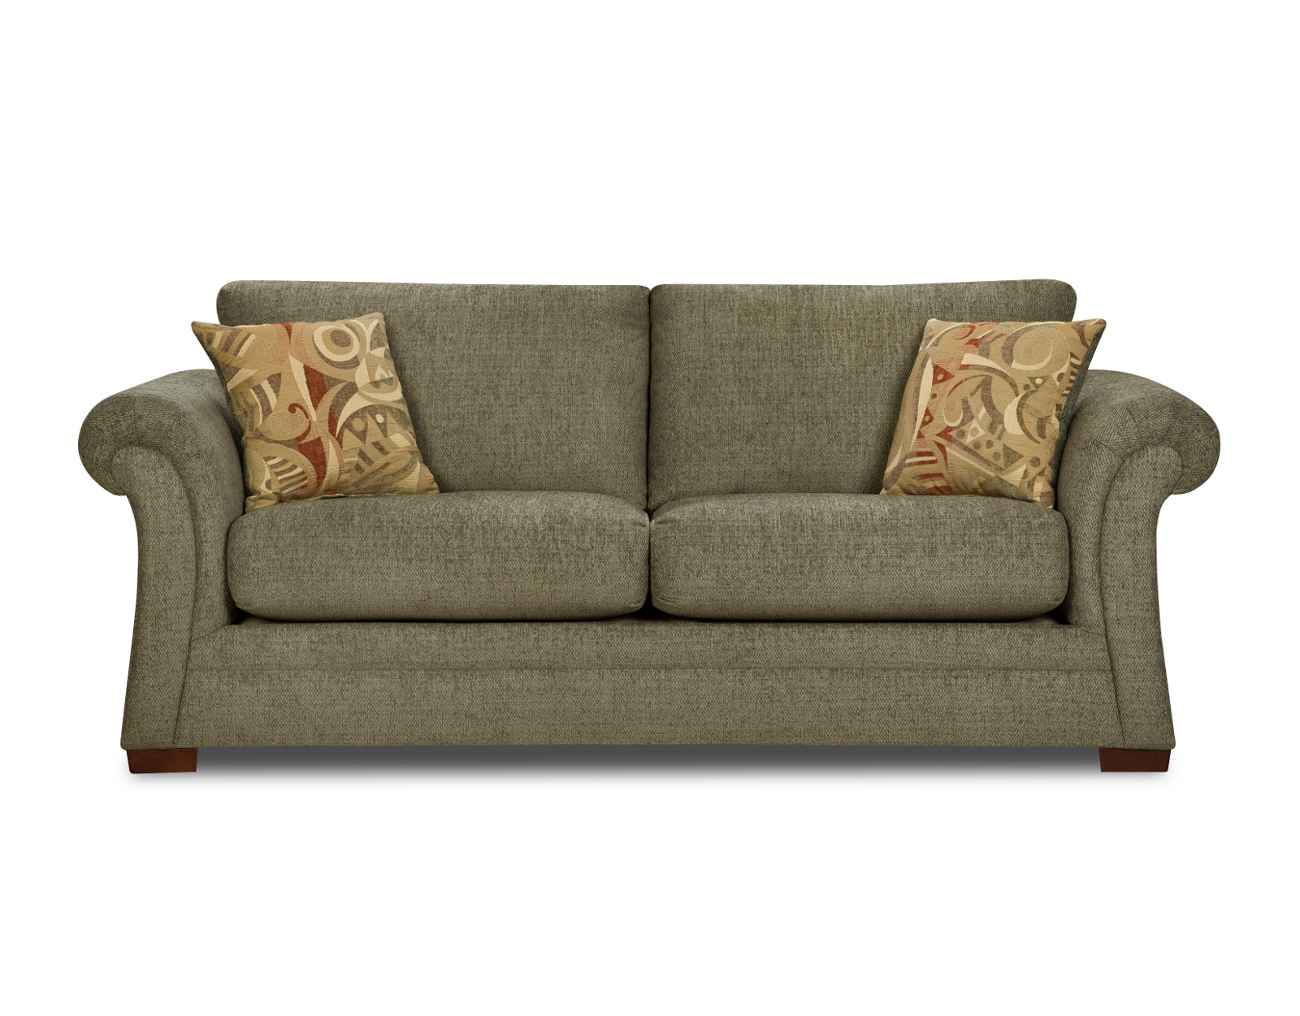 sofa online cheapest small sofas for living rooms cute couches available couch and